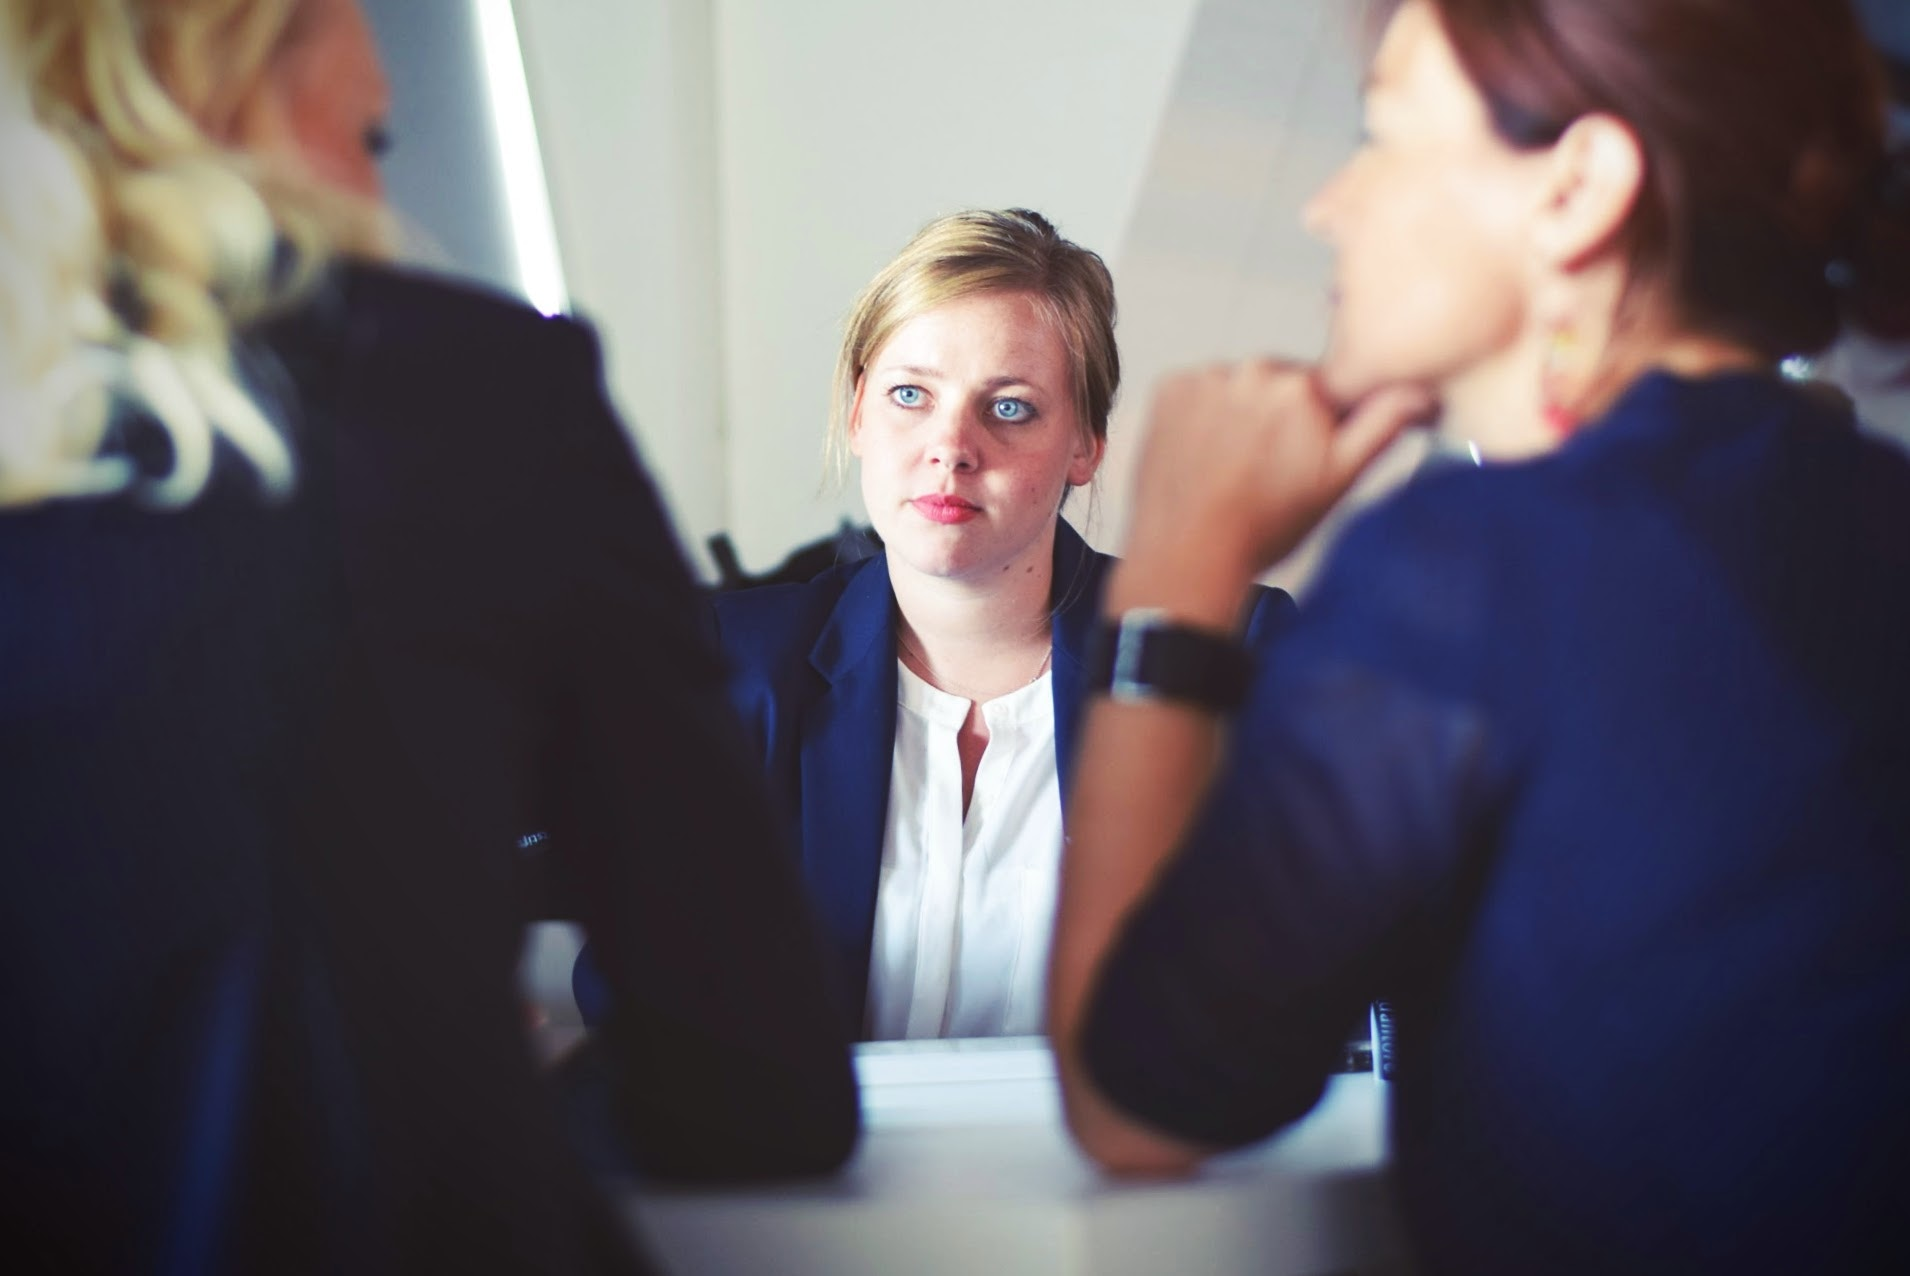 The Importance of Authenticity and Respect in the Workplace